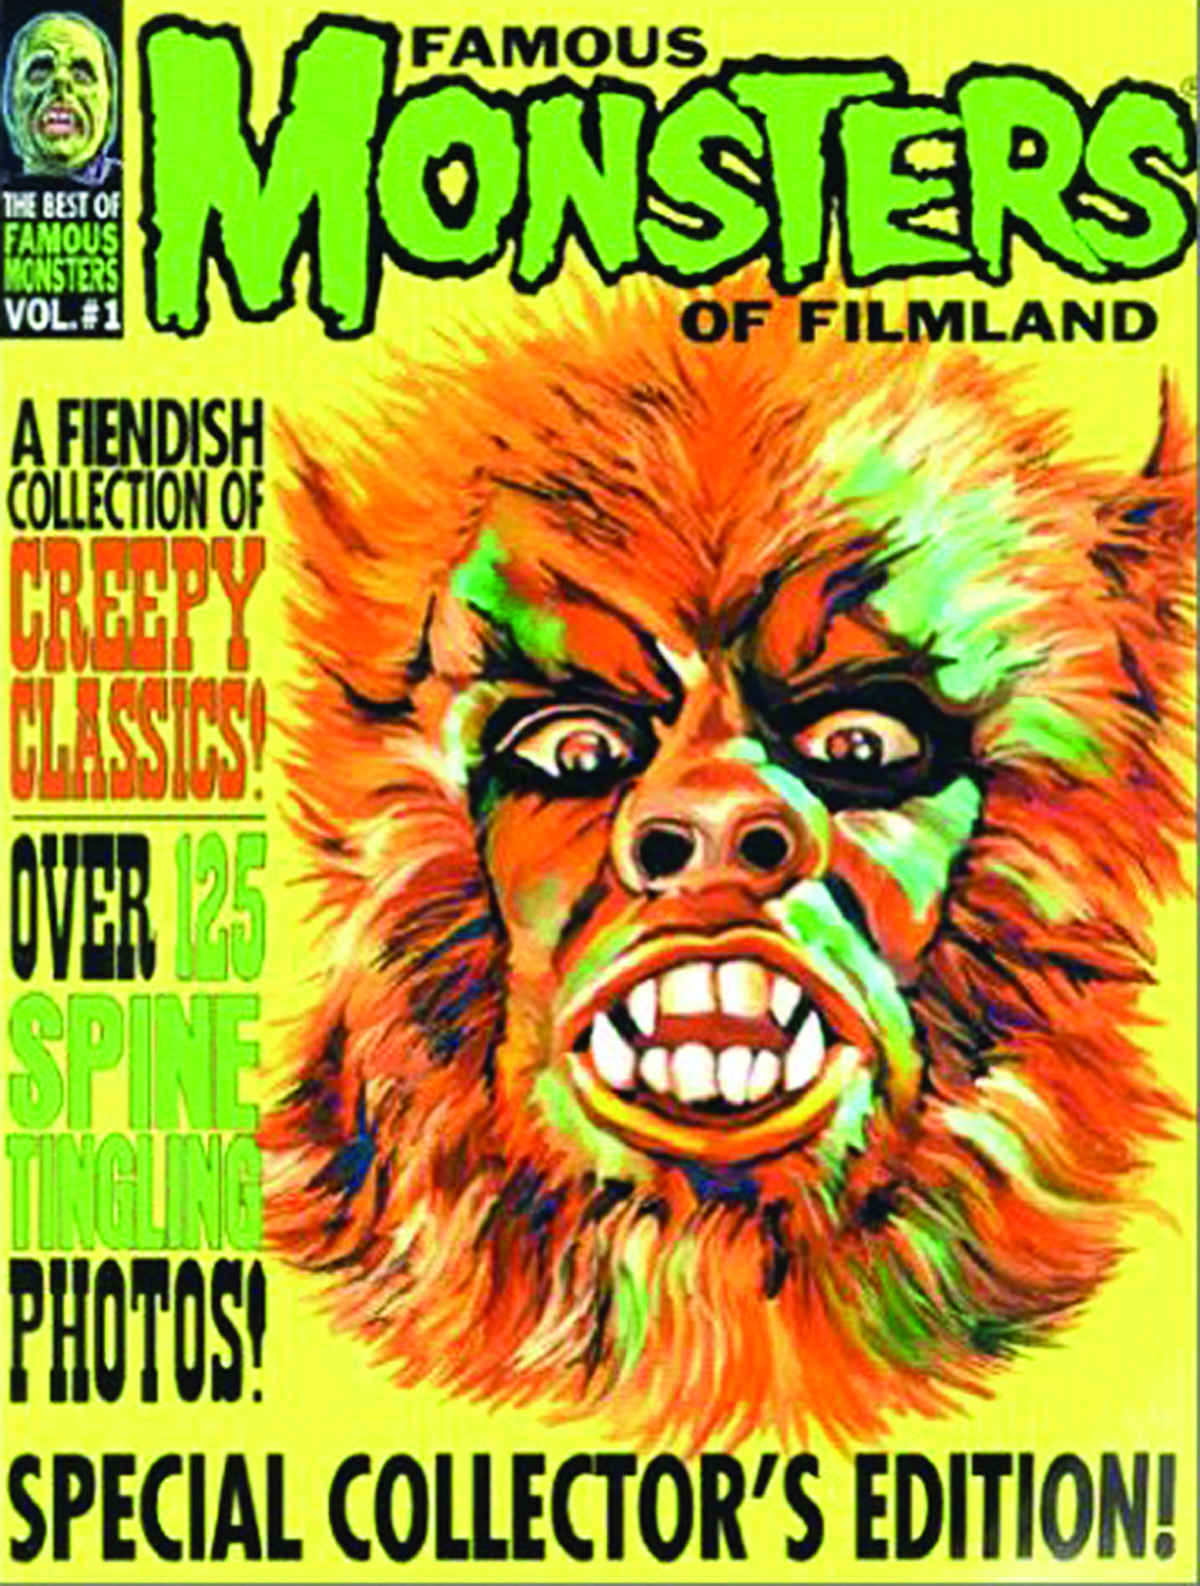 FAMOUS MONSTERS OF FILMLAND BEST OF COLLECTION #1